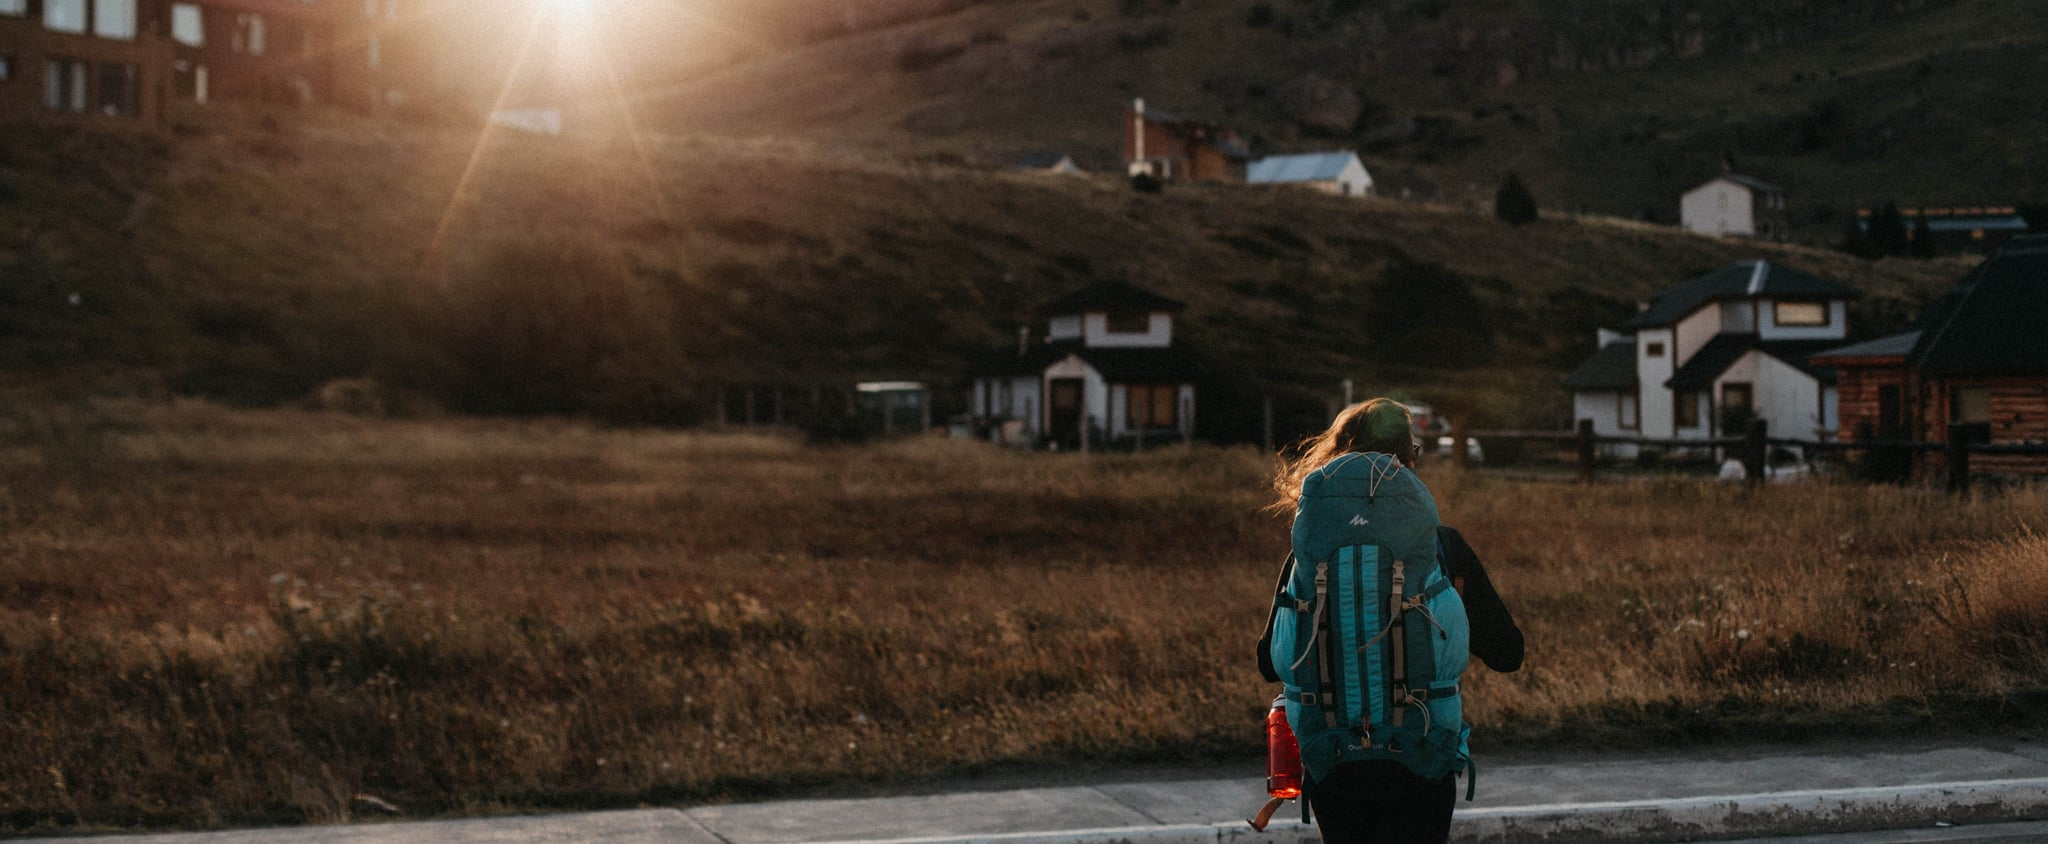 Travelling Alone After a Breakup